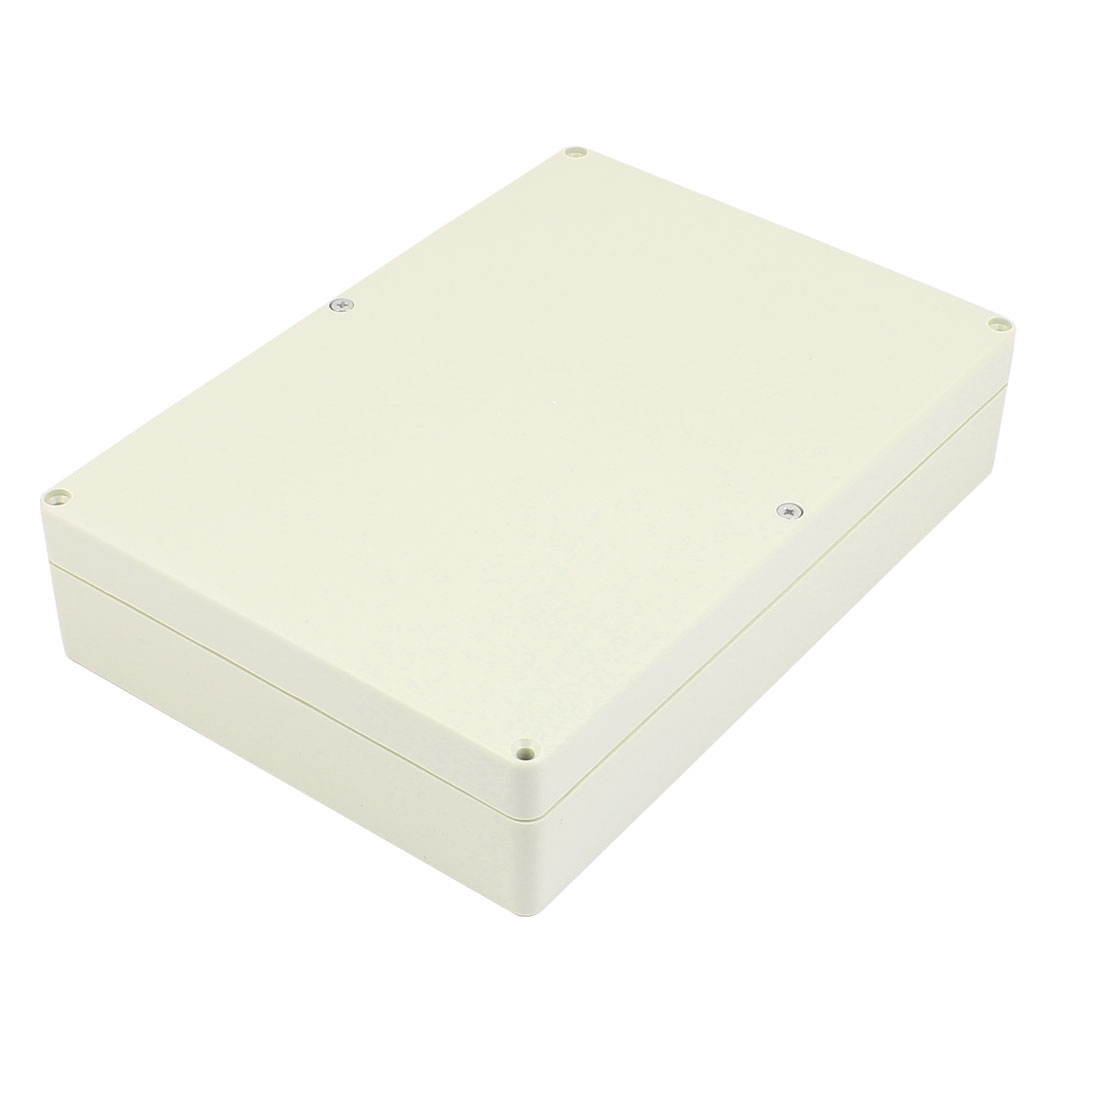 Dustproof IP65 Junction Box DIY Terminal Connection Enclosure Adaptable 255mm x 174mm x 52mm